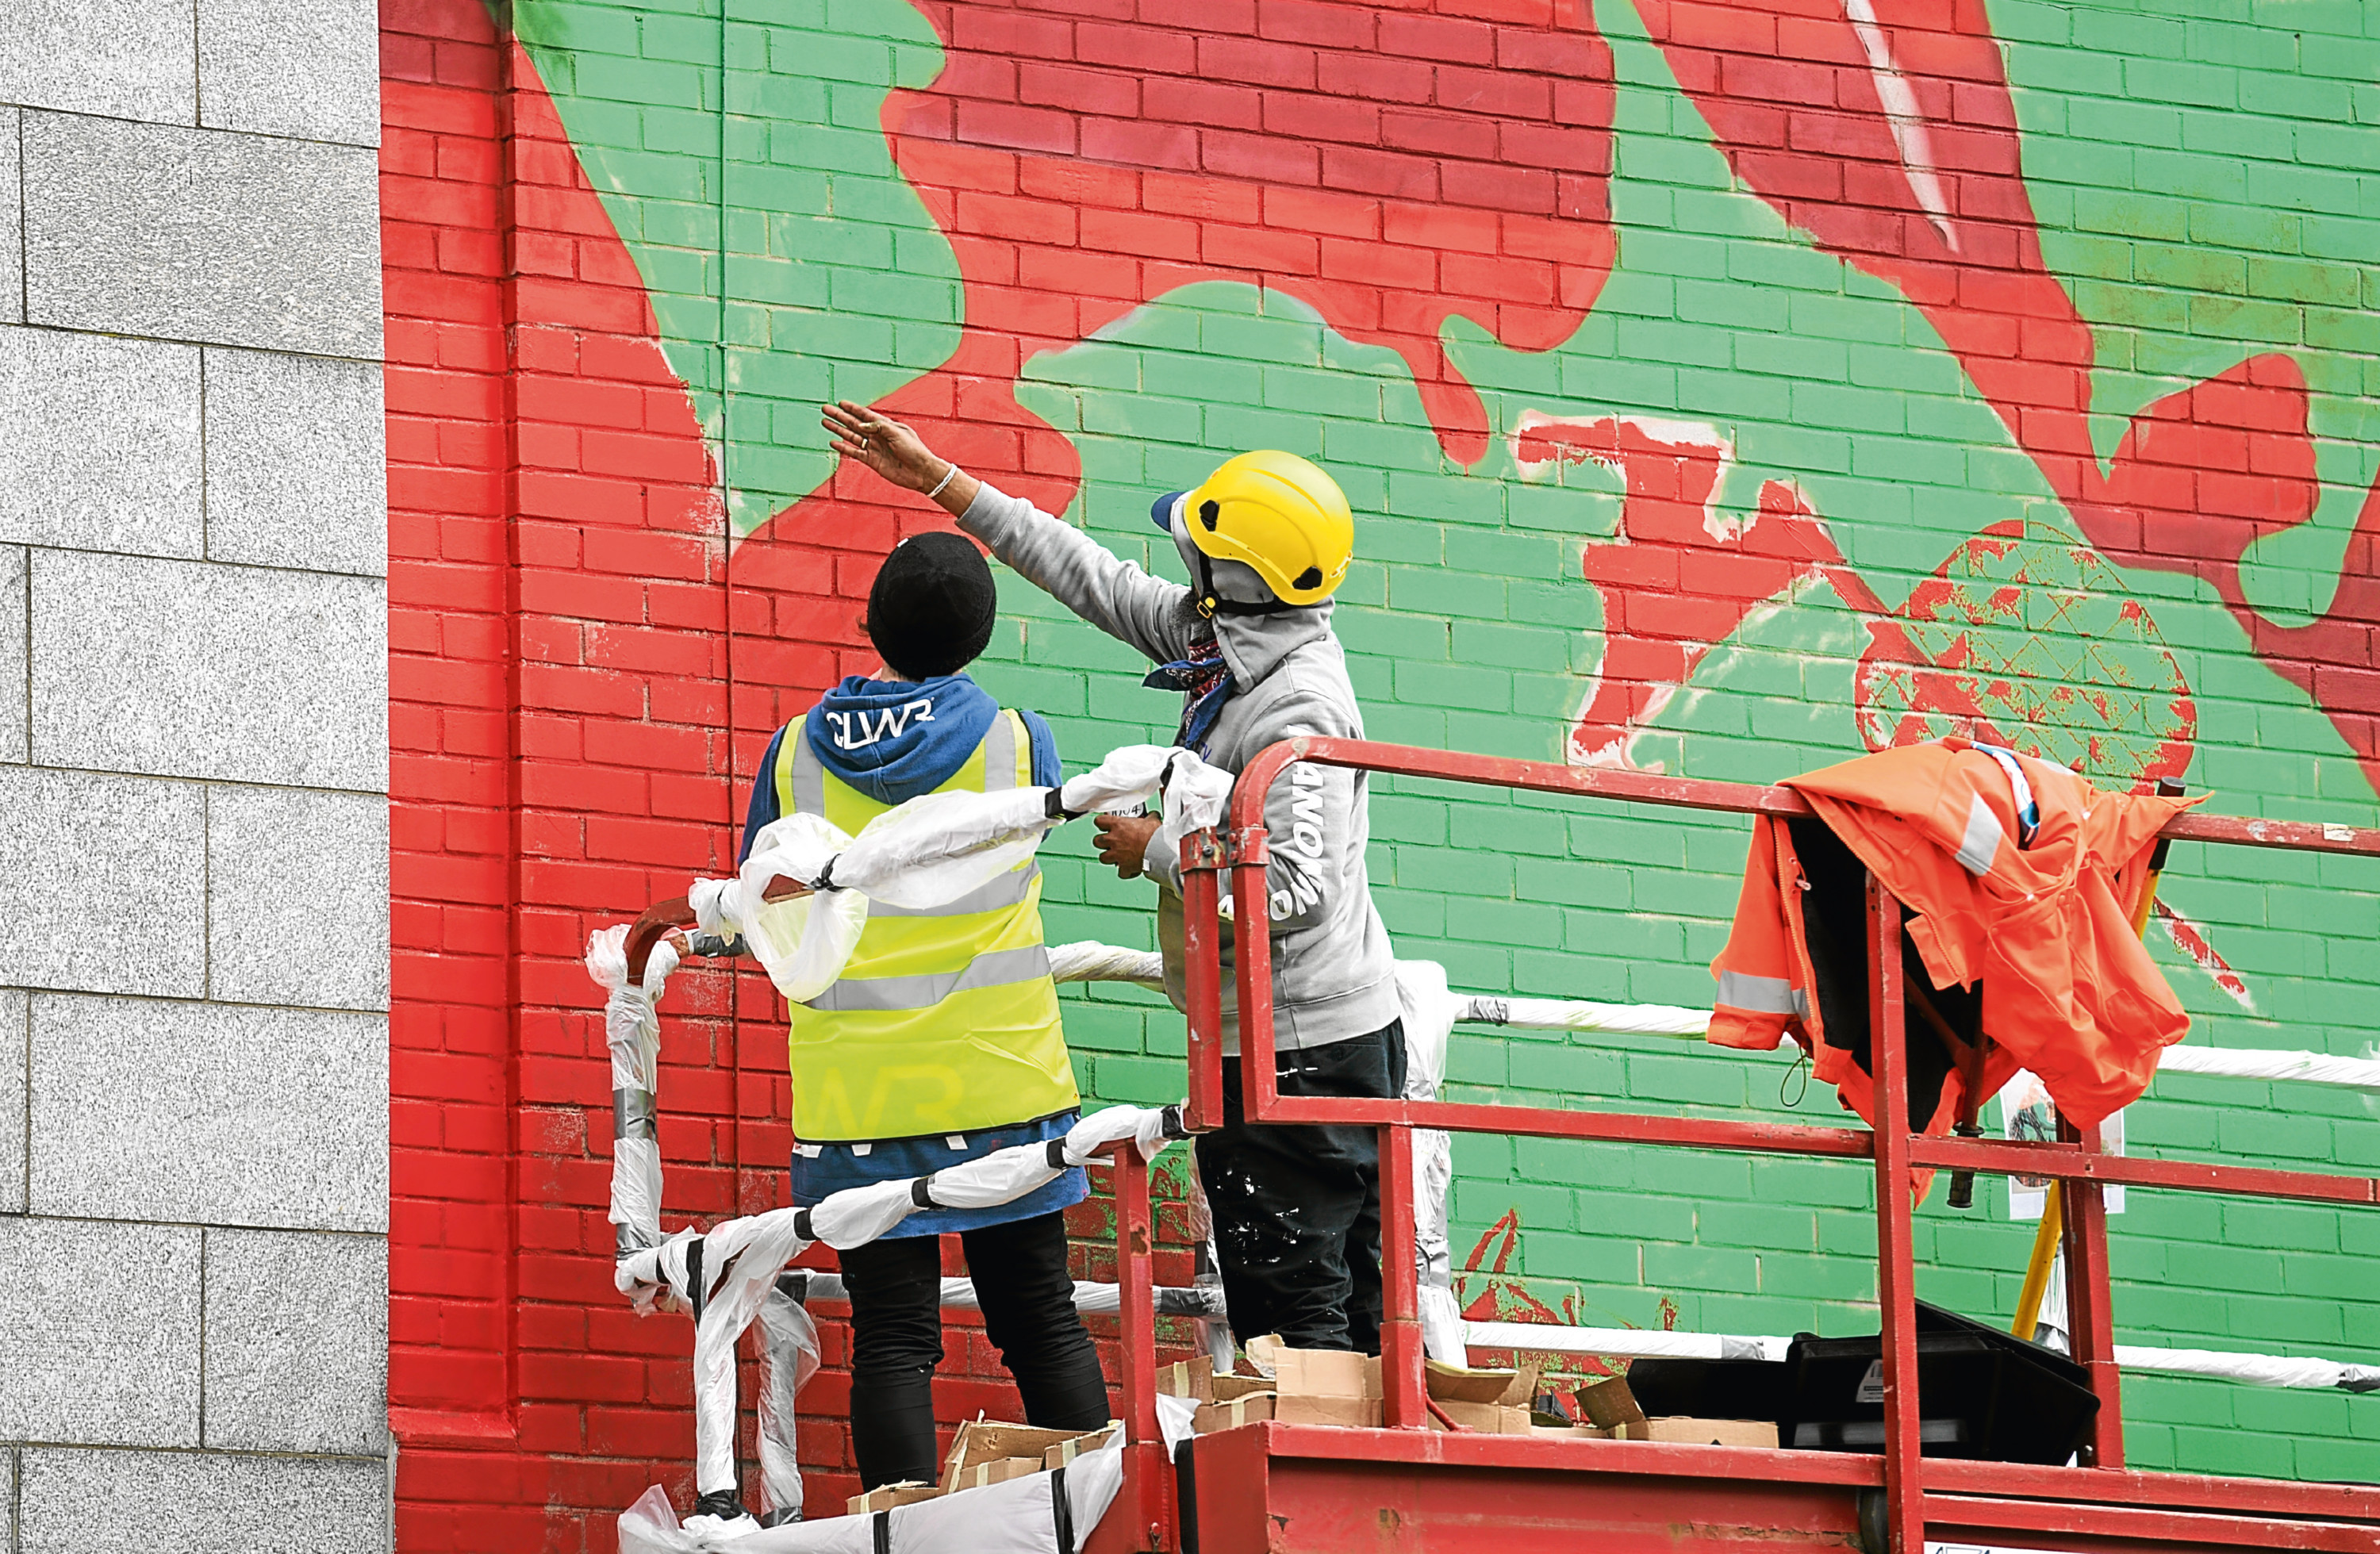 Artists Numi and RH74  working on their piece on Union Row.